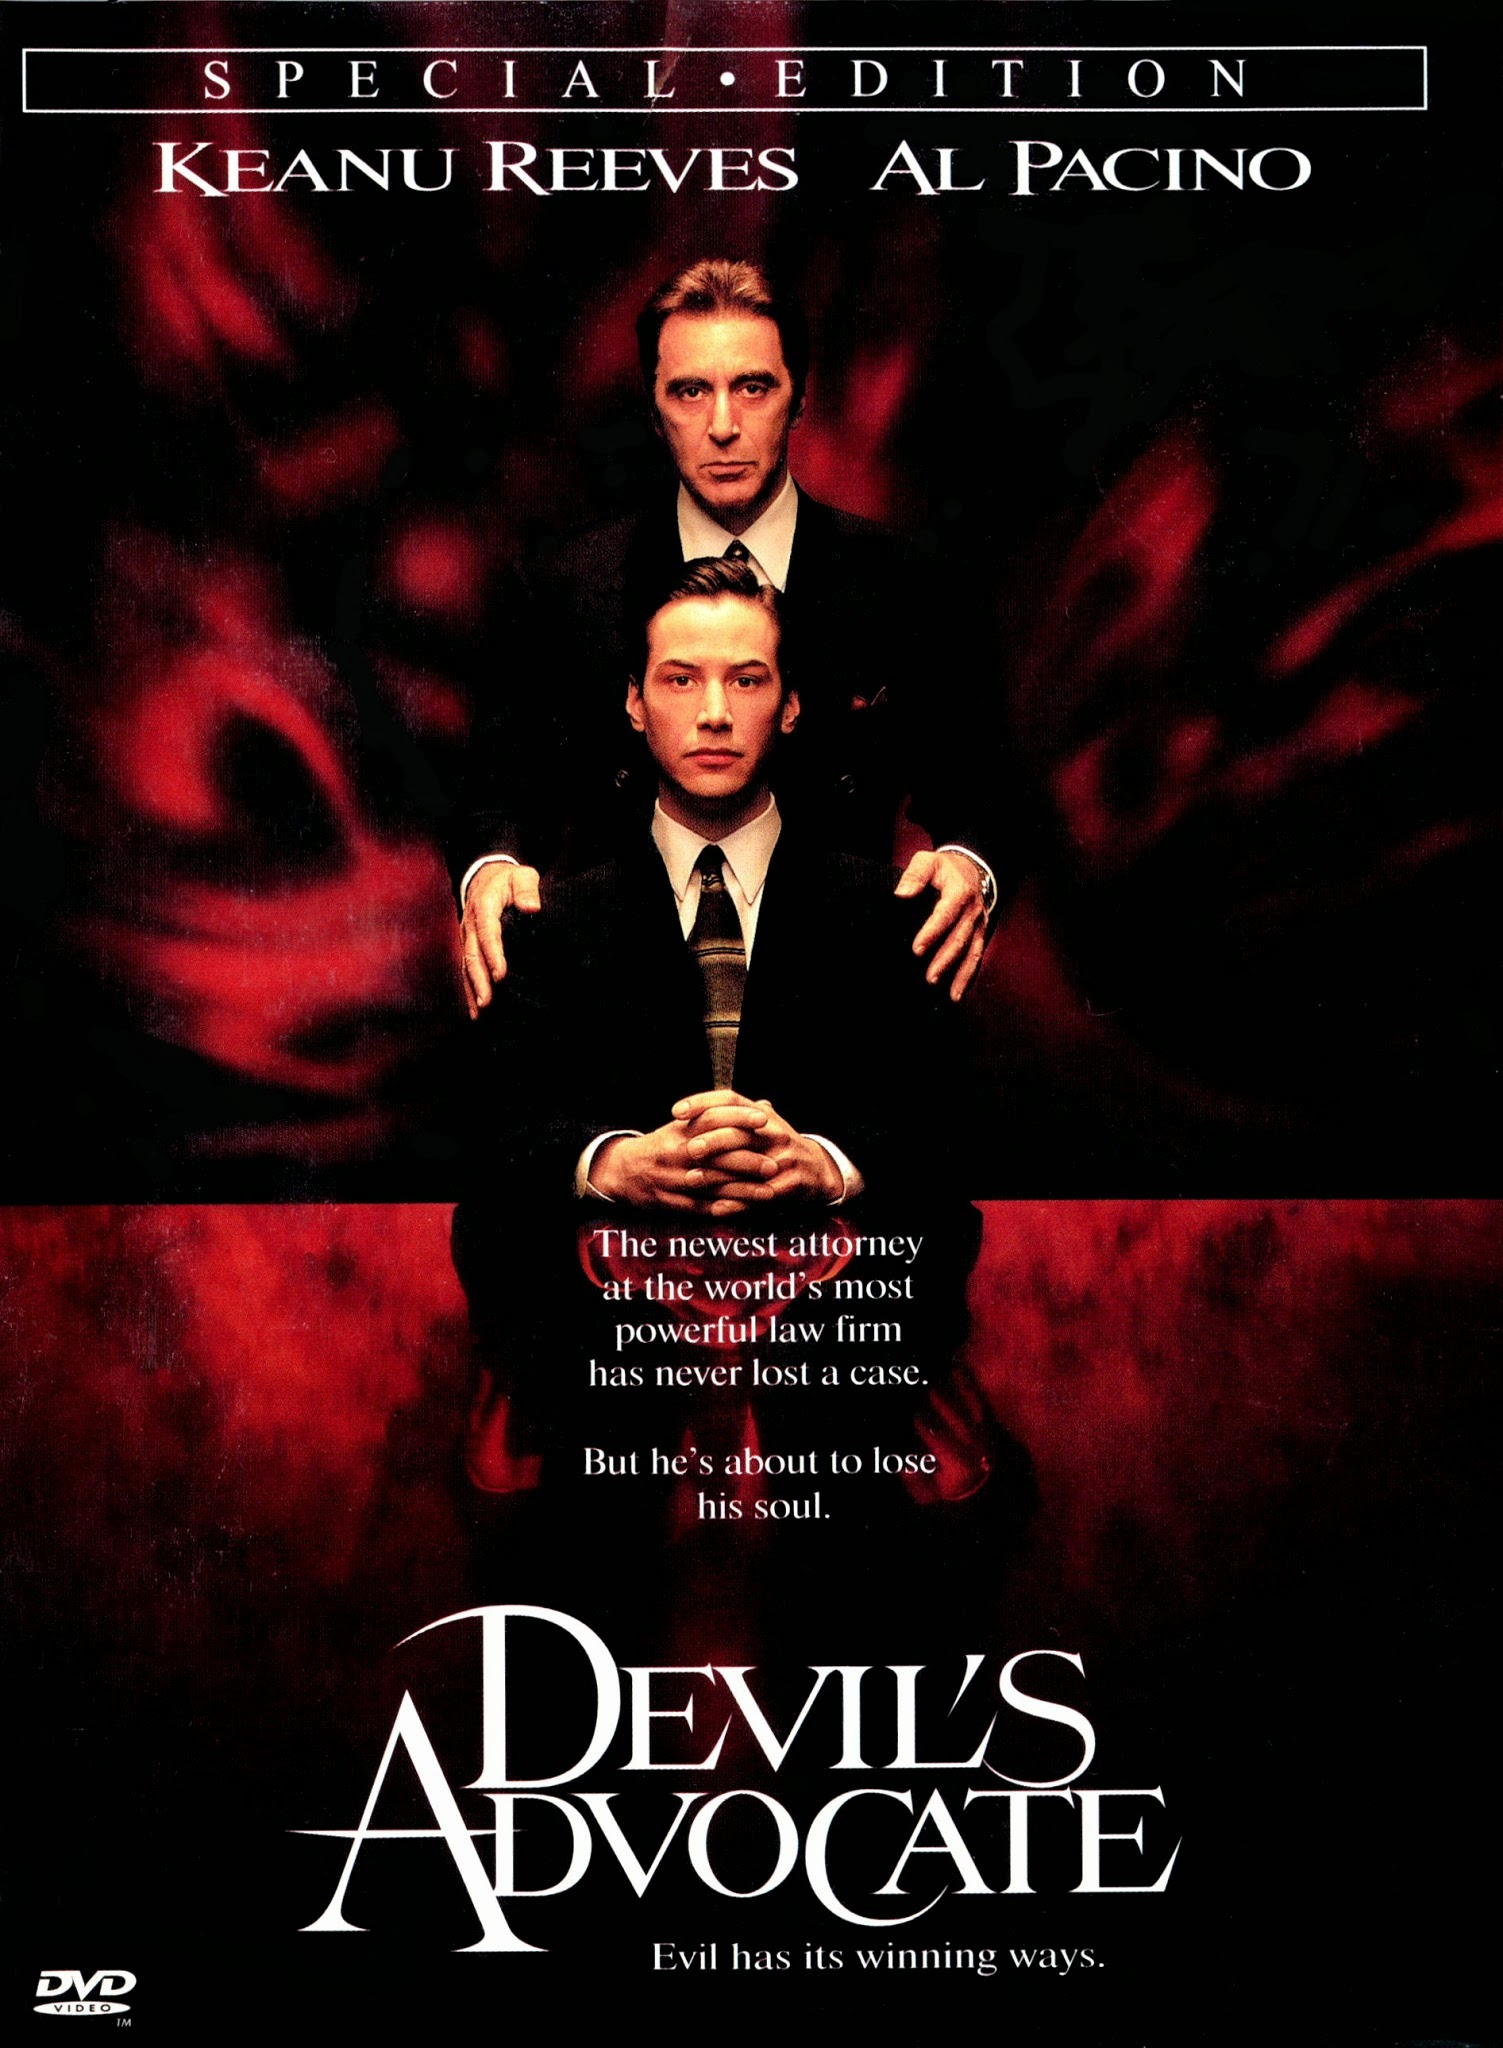 Dvd Exotica The Devils Advocate Uncensored Recalled Dvd